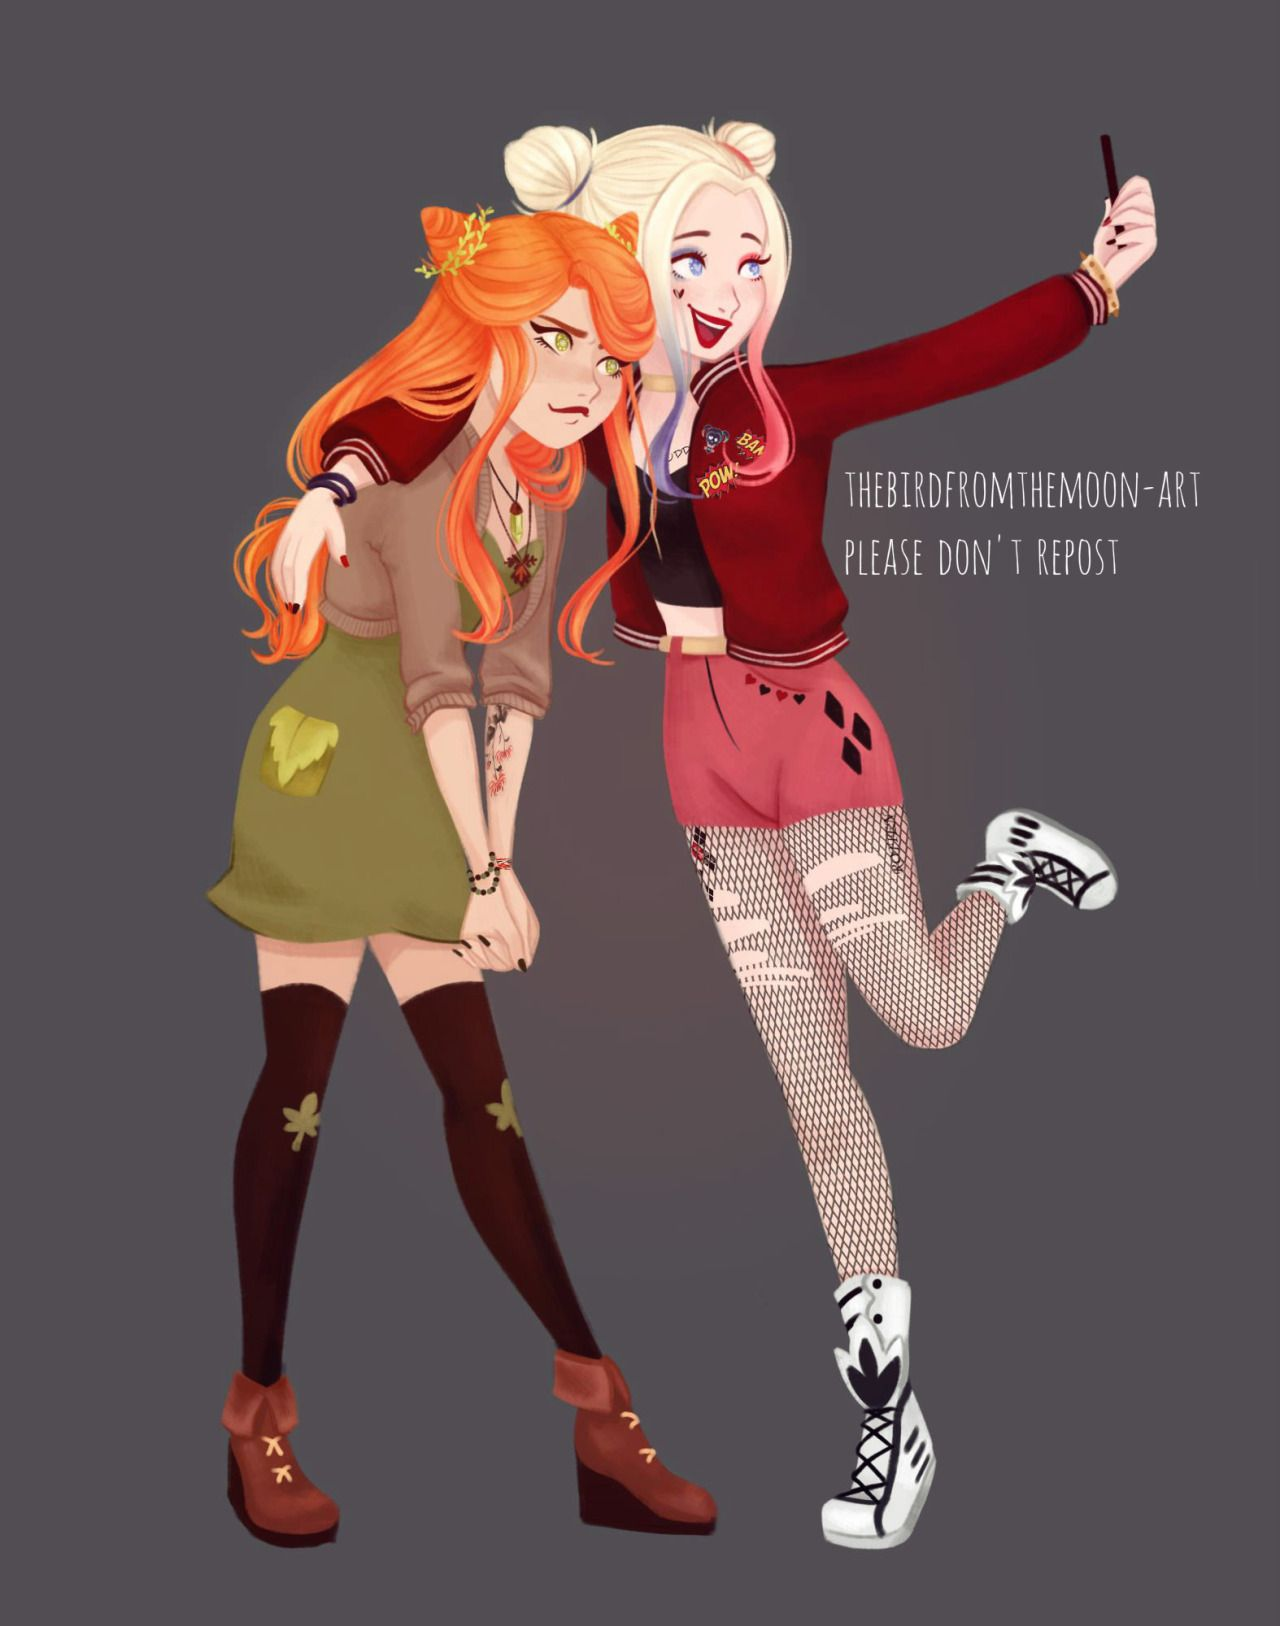 cecfee2658b6 Cute Harlivy picture! Seriously I LOVE this one. Harley Quinn and ...